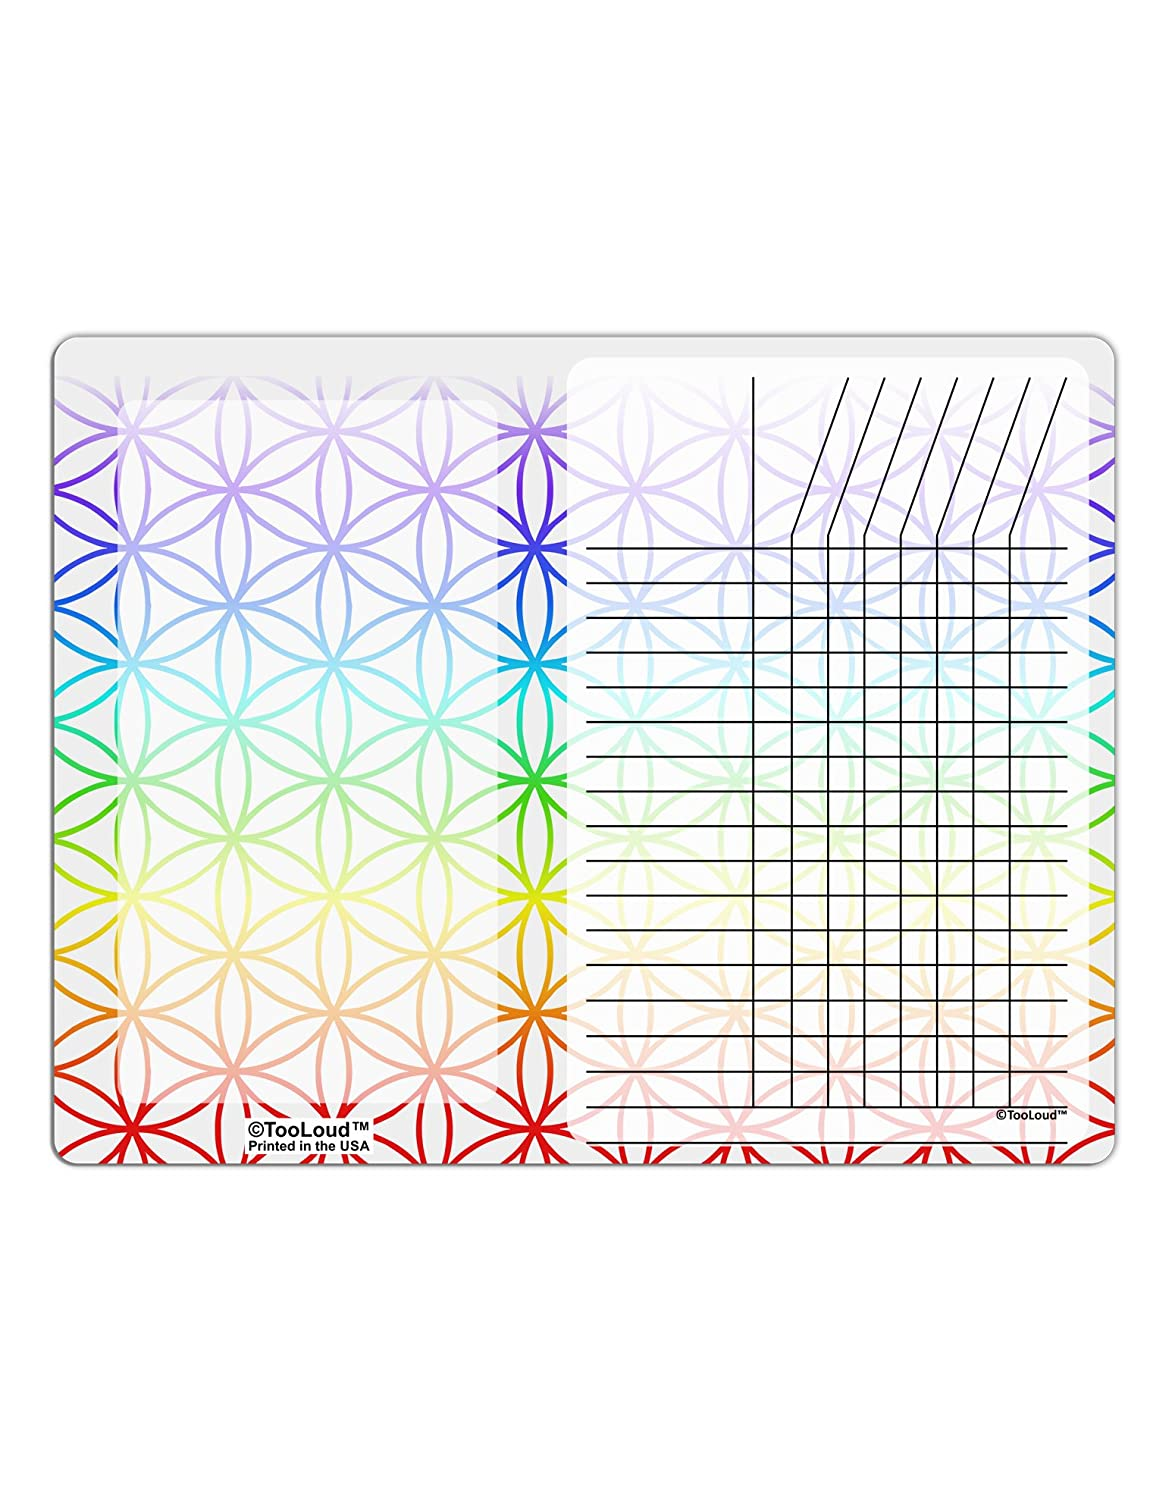 TooLoud Chakra Flower of Life on White Chore List Grid Dry Erase Board All Over Print